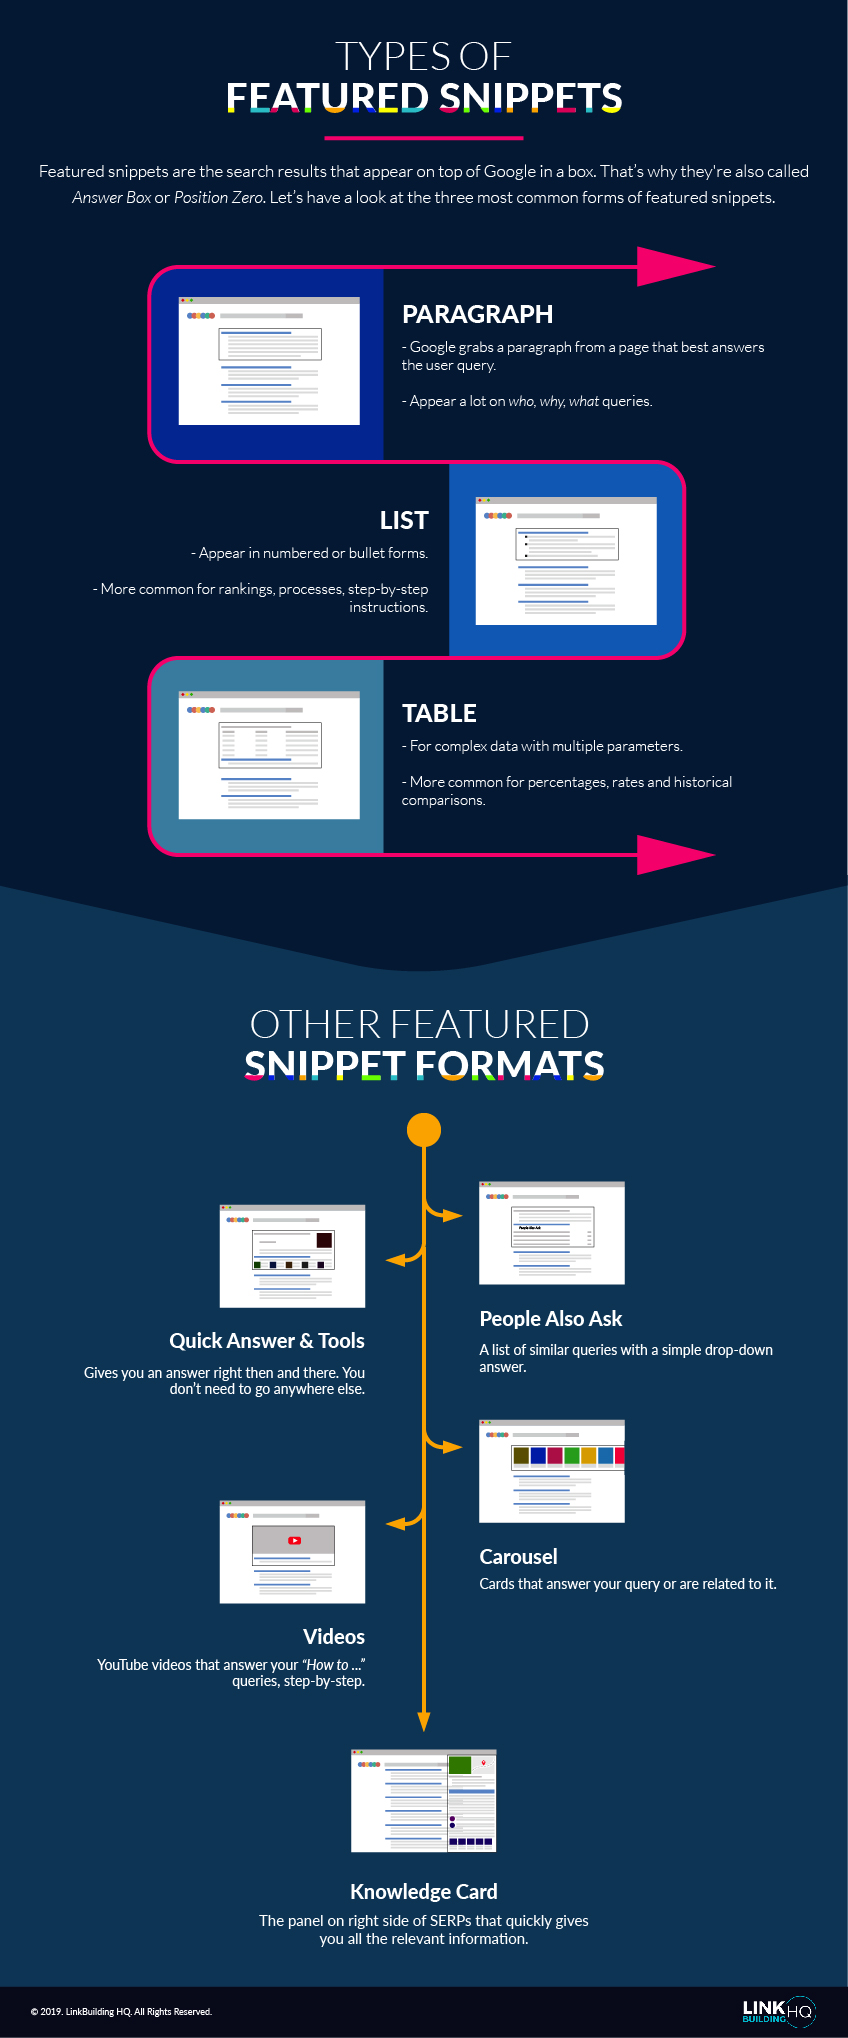 Infographic about the types of featured snippets